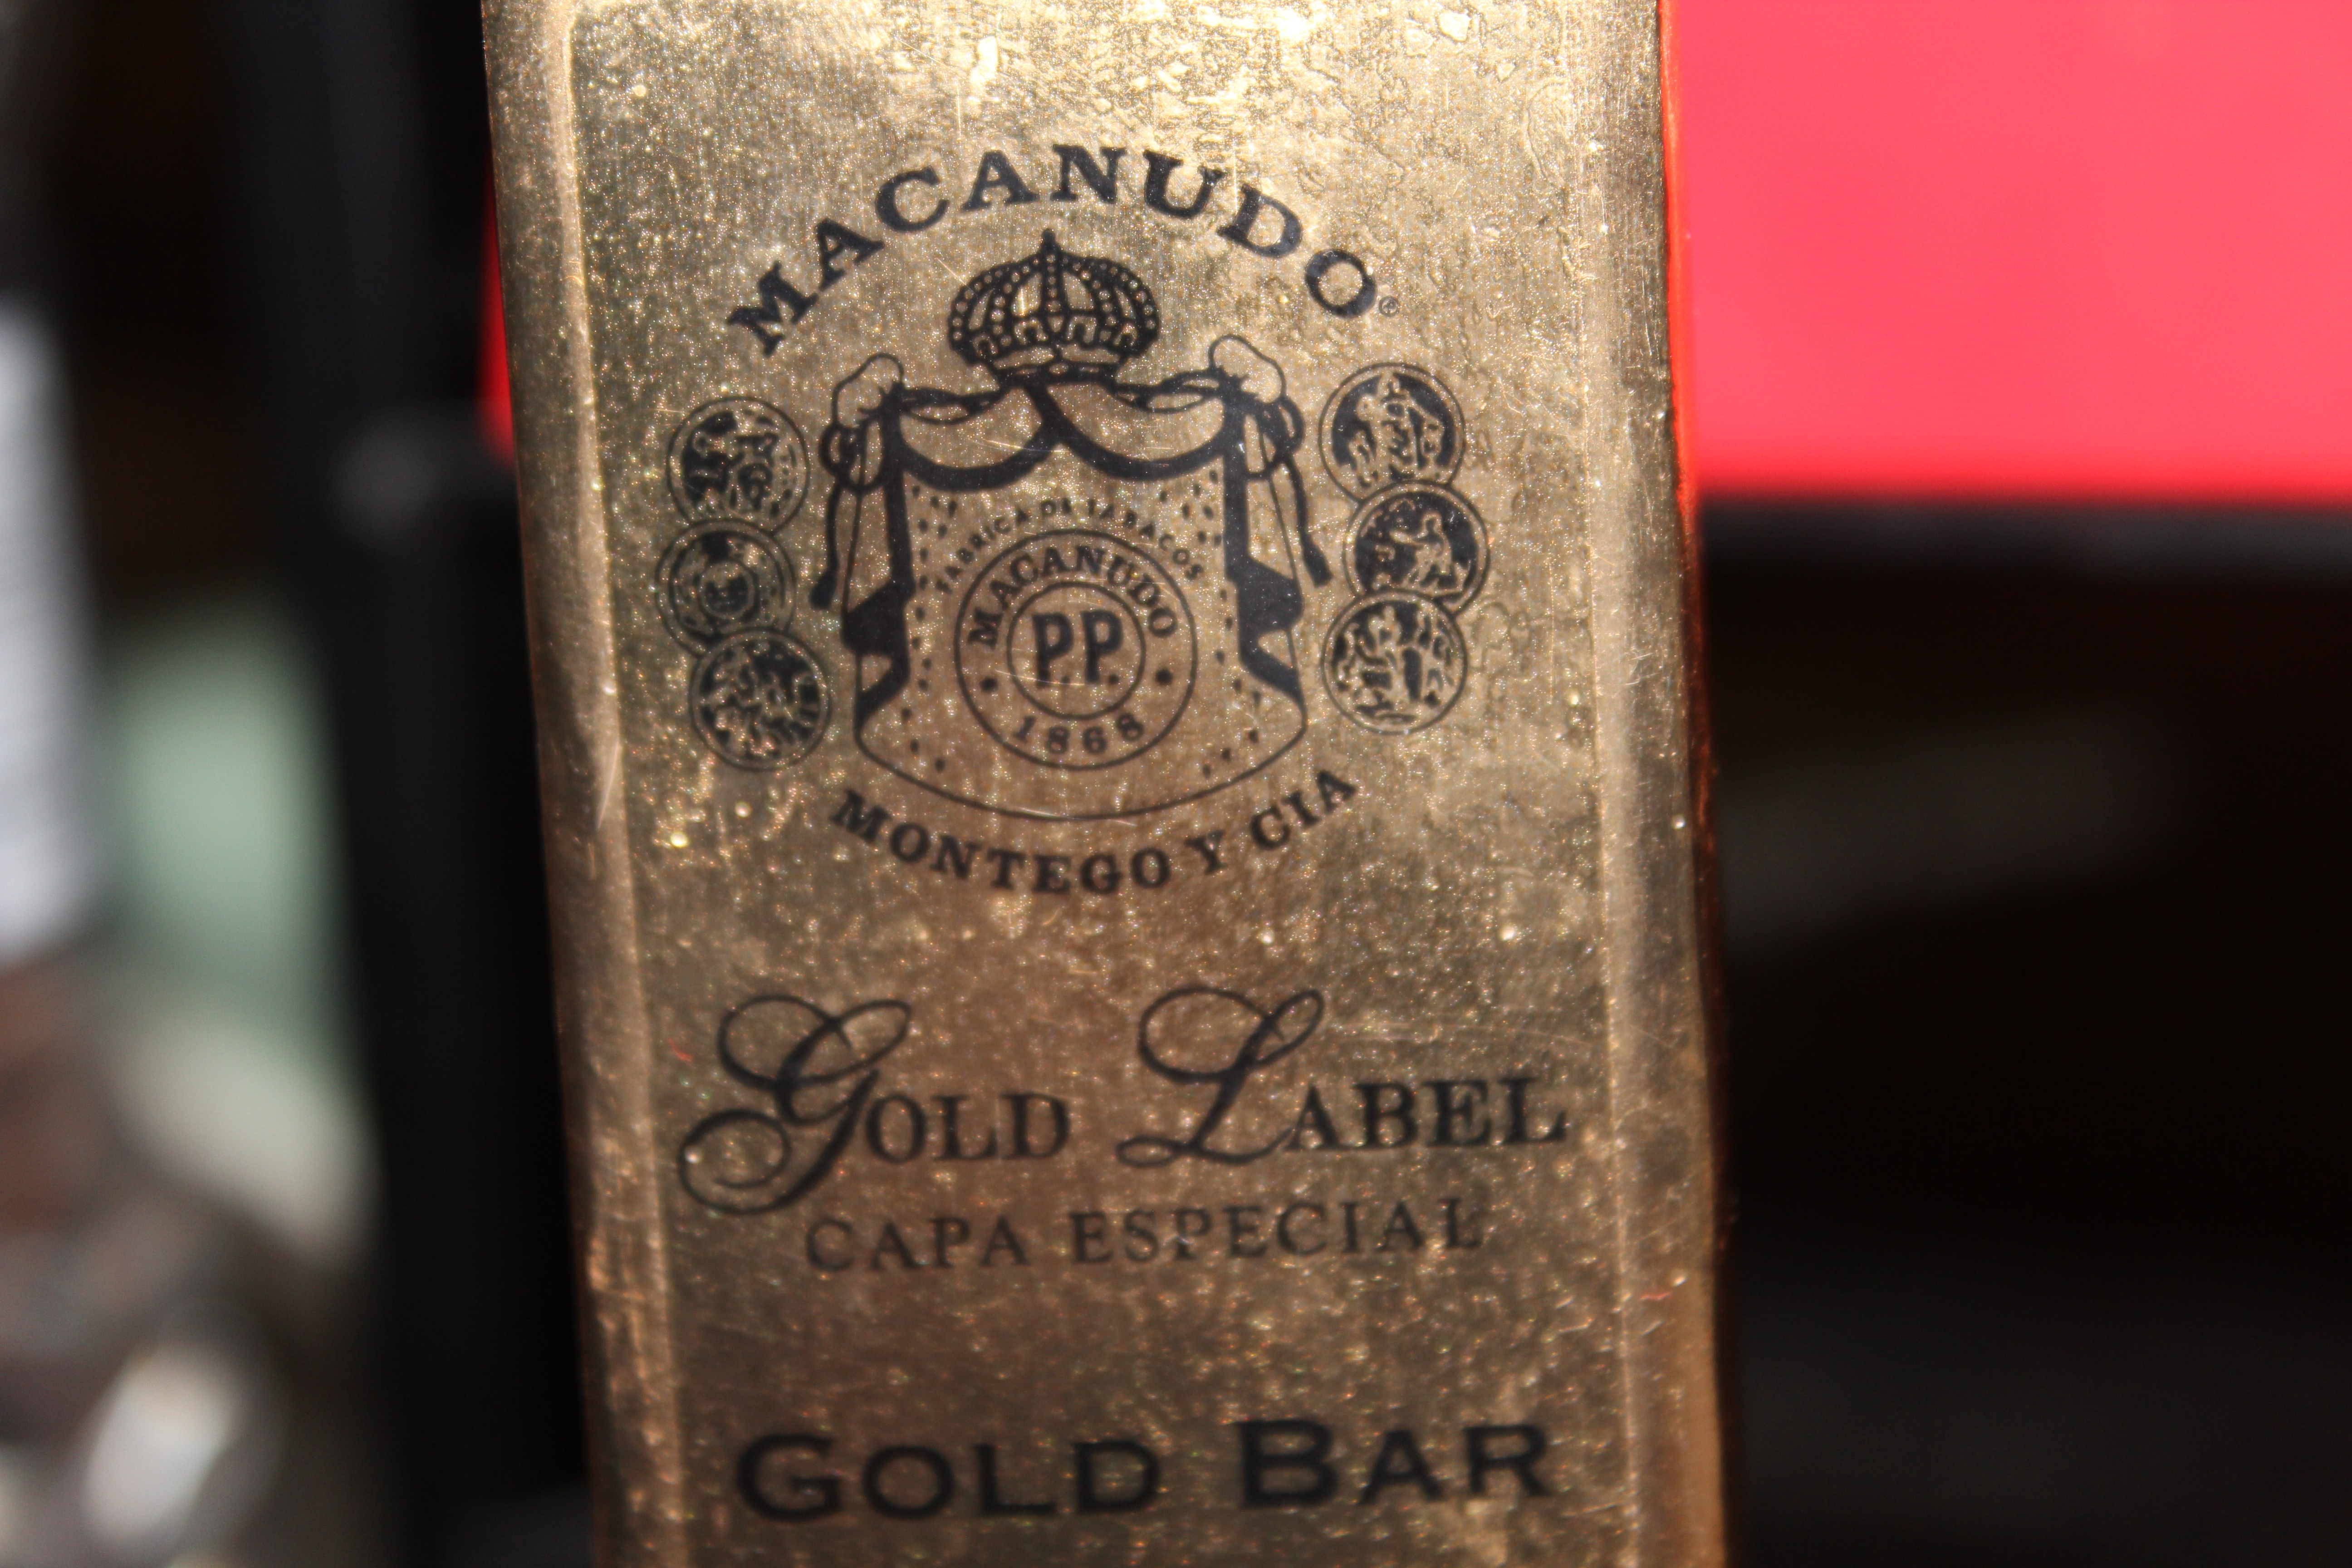 Macanudo Gold Label Gold Bar – Cigar Review